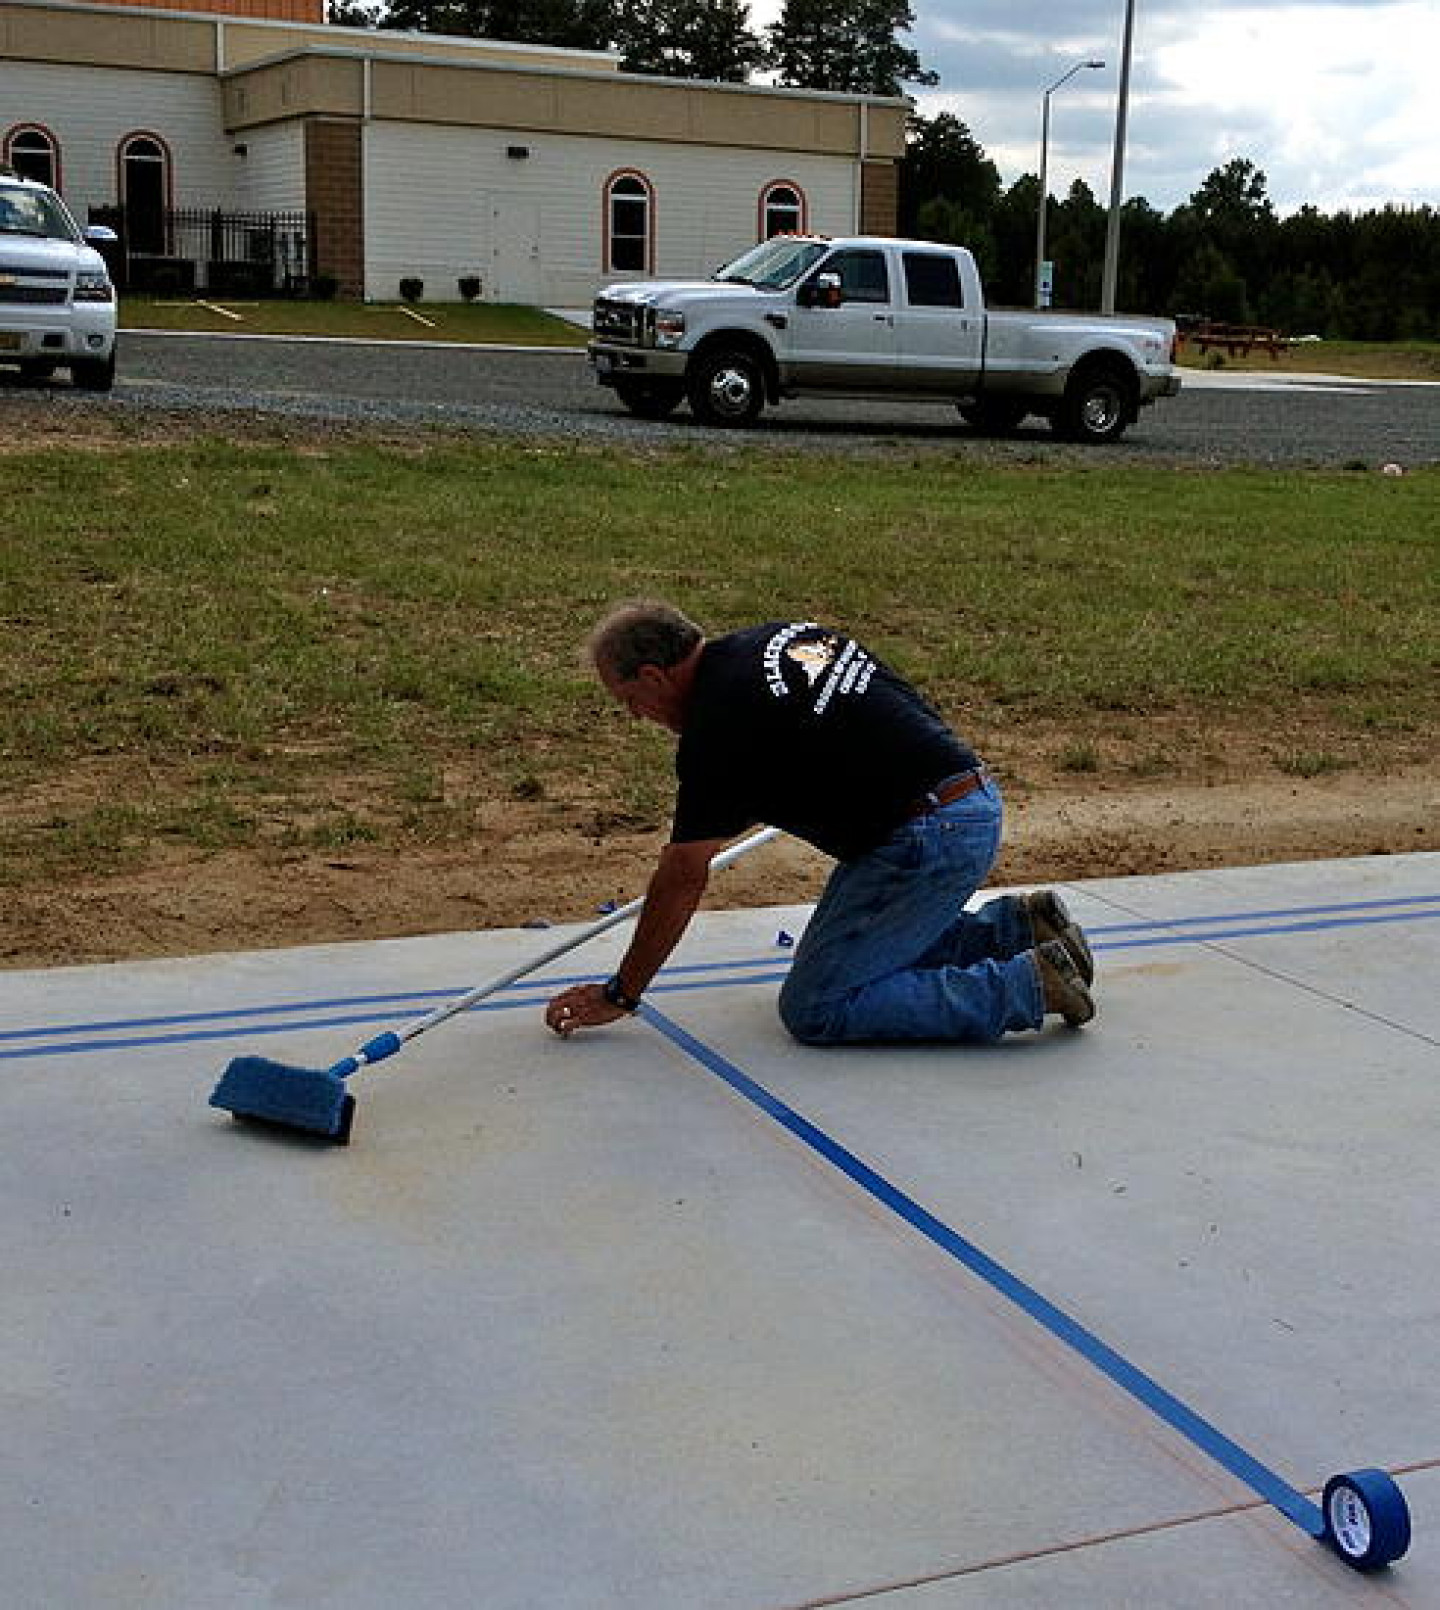 Trusted Chapel Hill, NC concrete contractors will help you every step of the way.